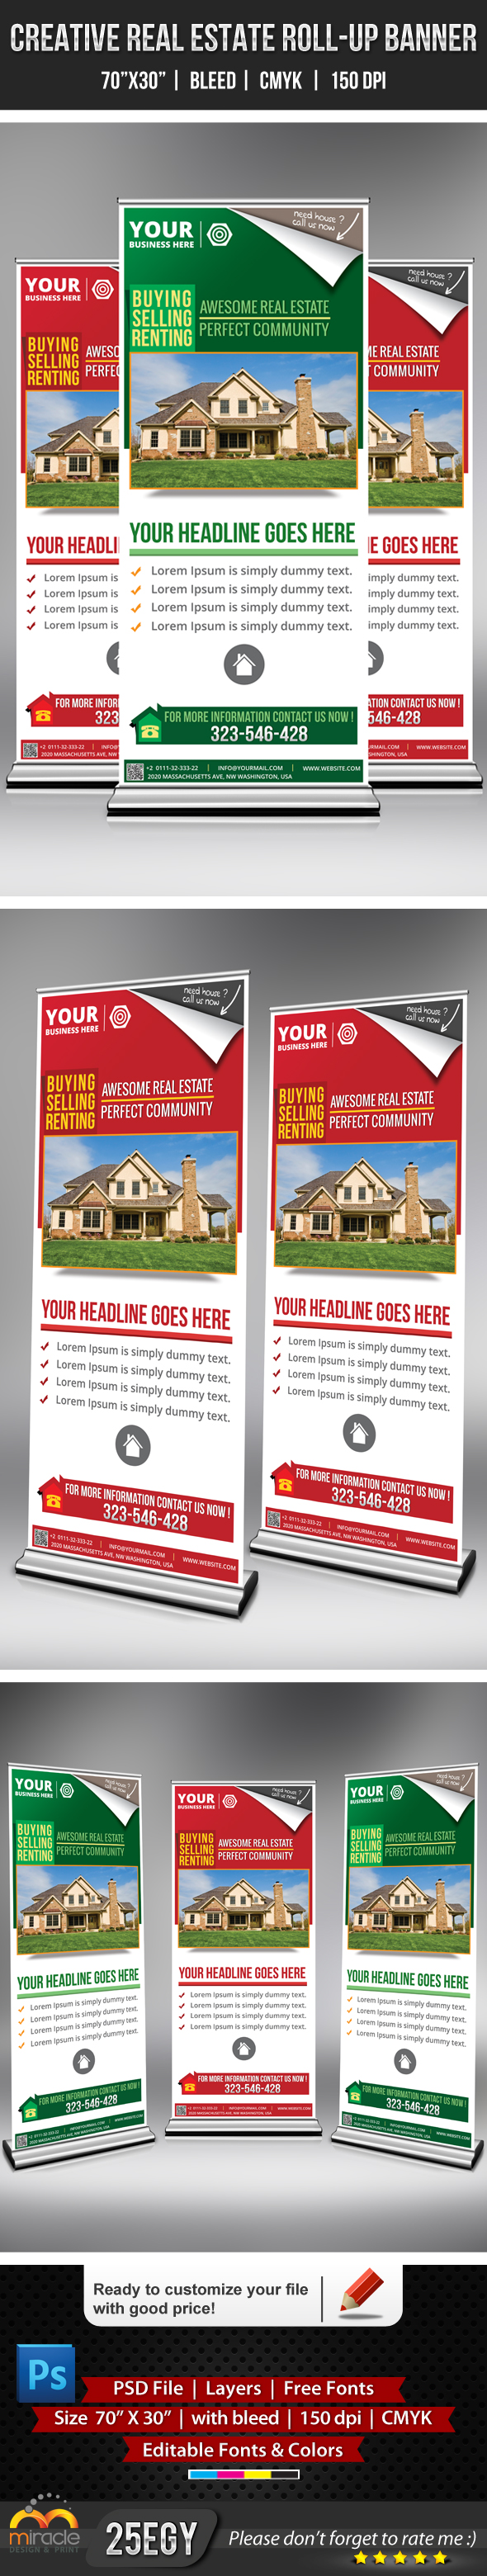 Real Estate Vertical Banner Real Estate Roll up Banner